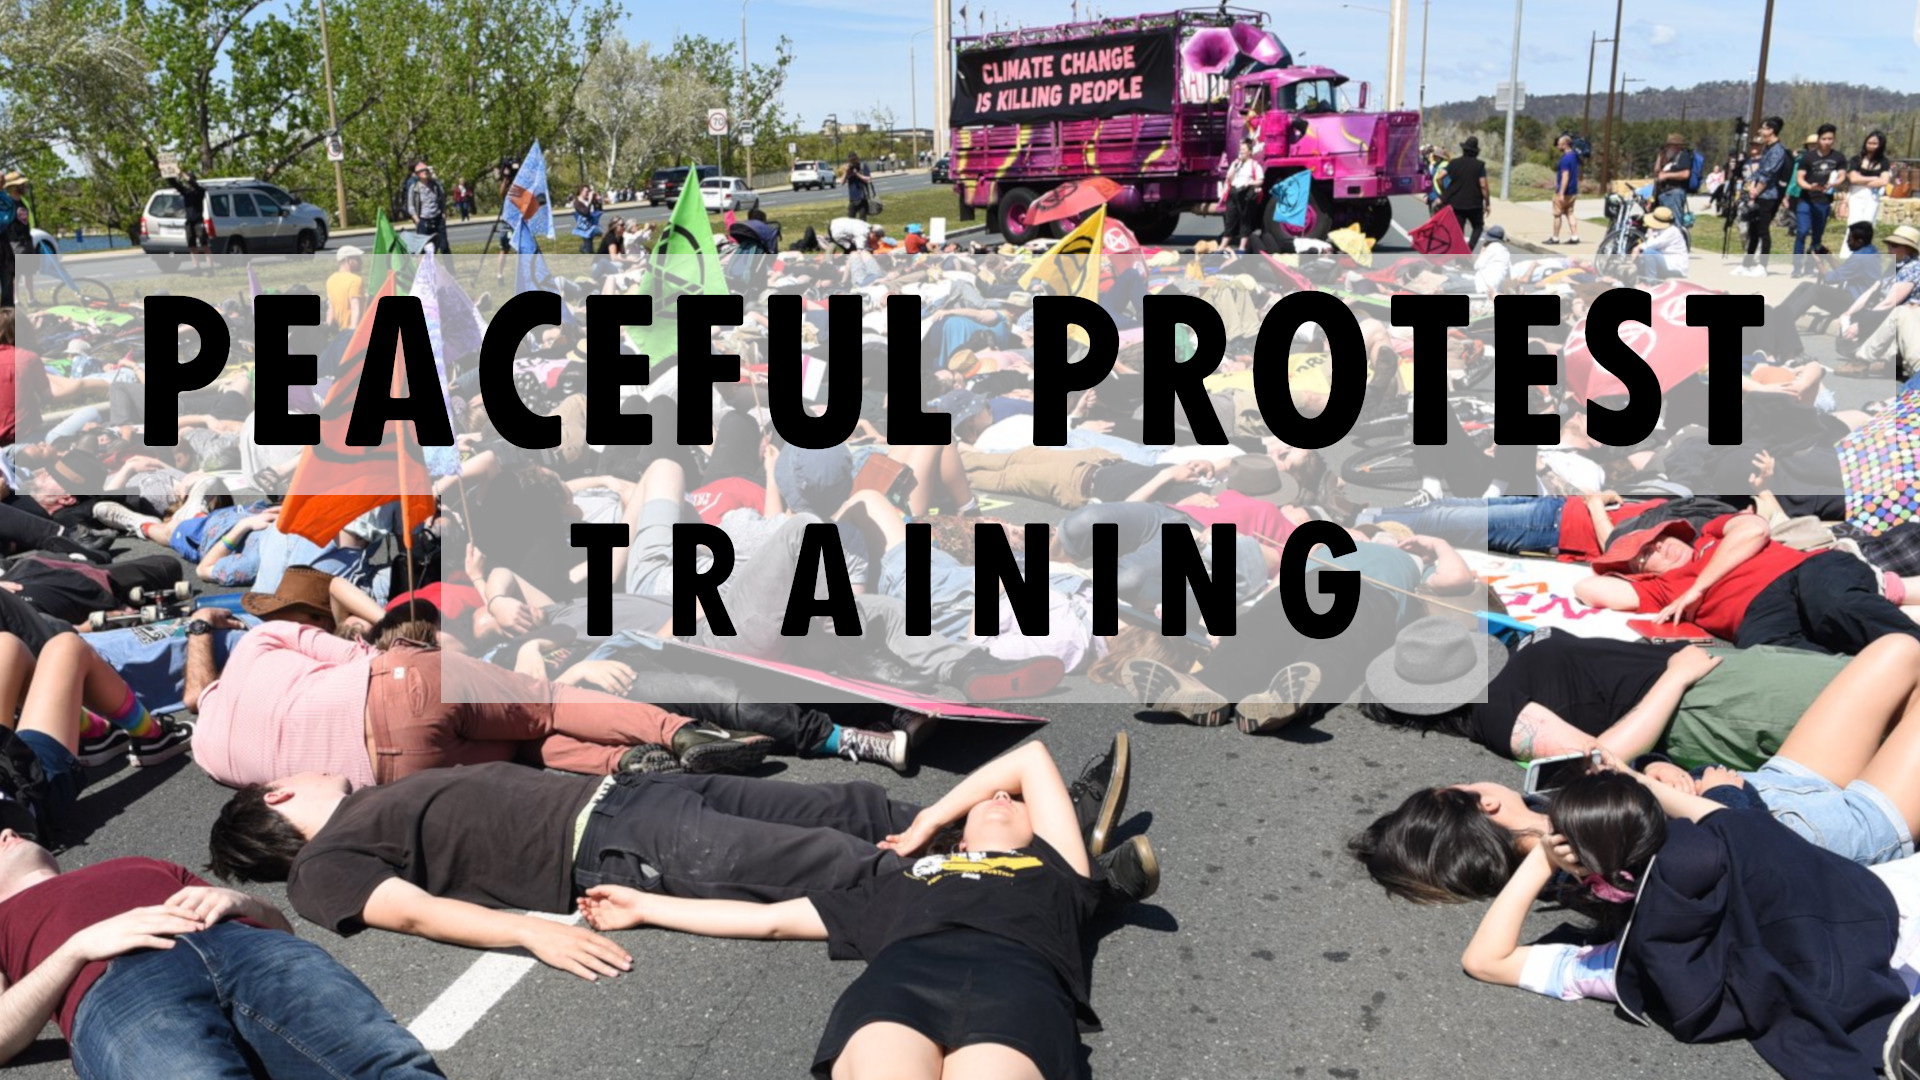 Peacefulprotesttrainingbanner